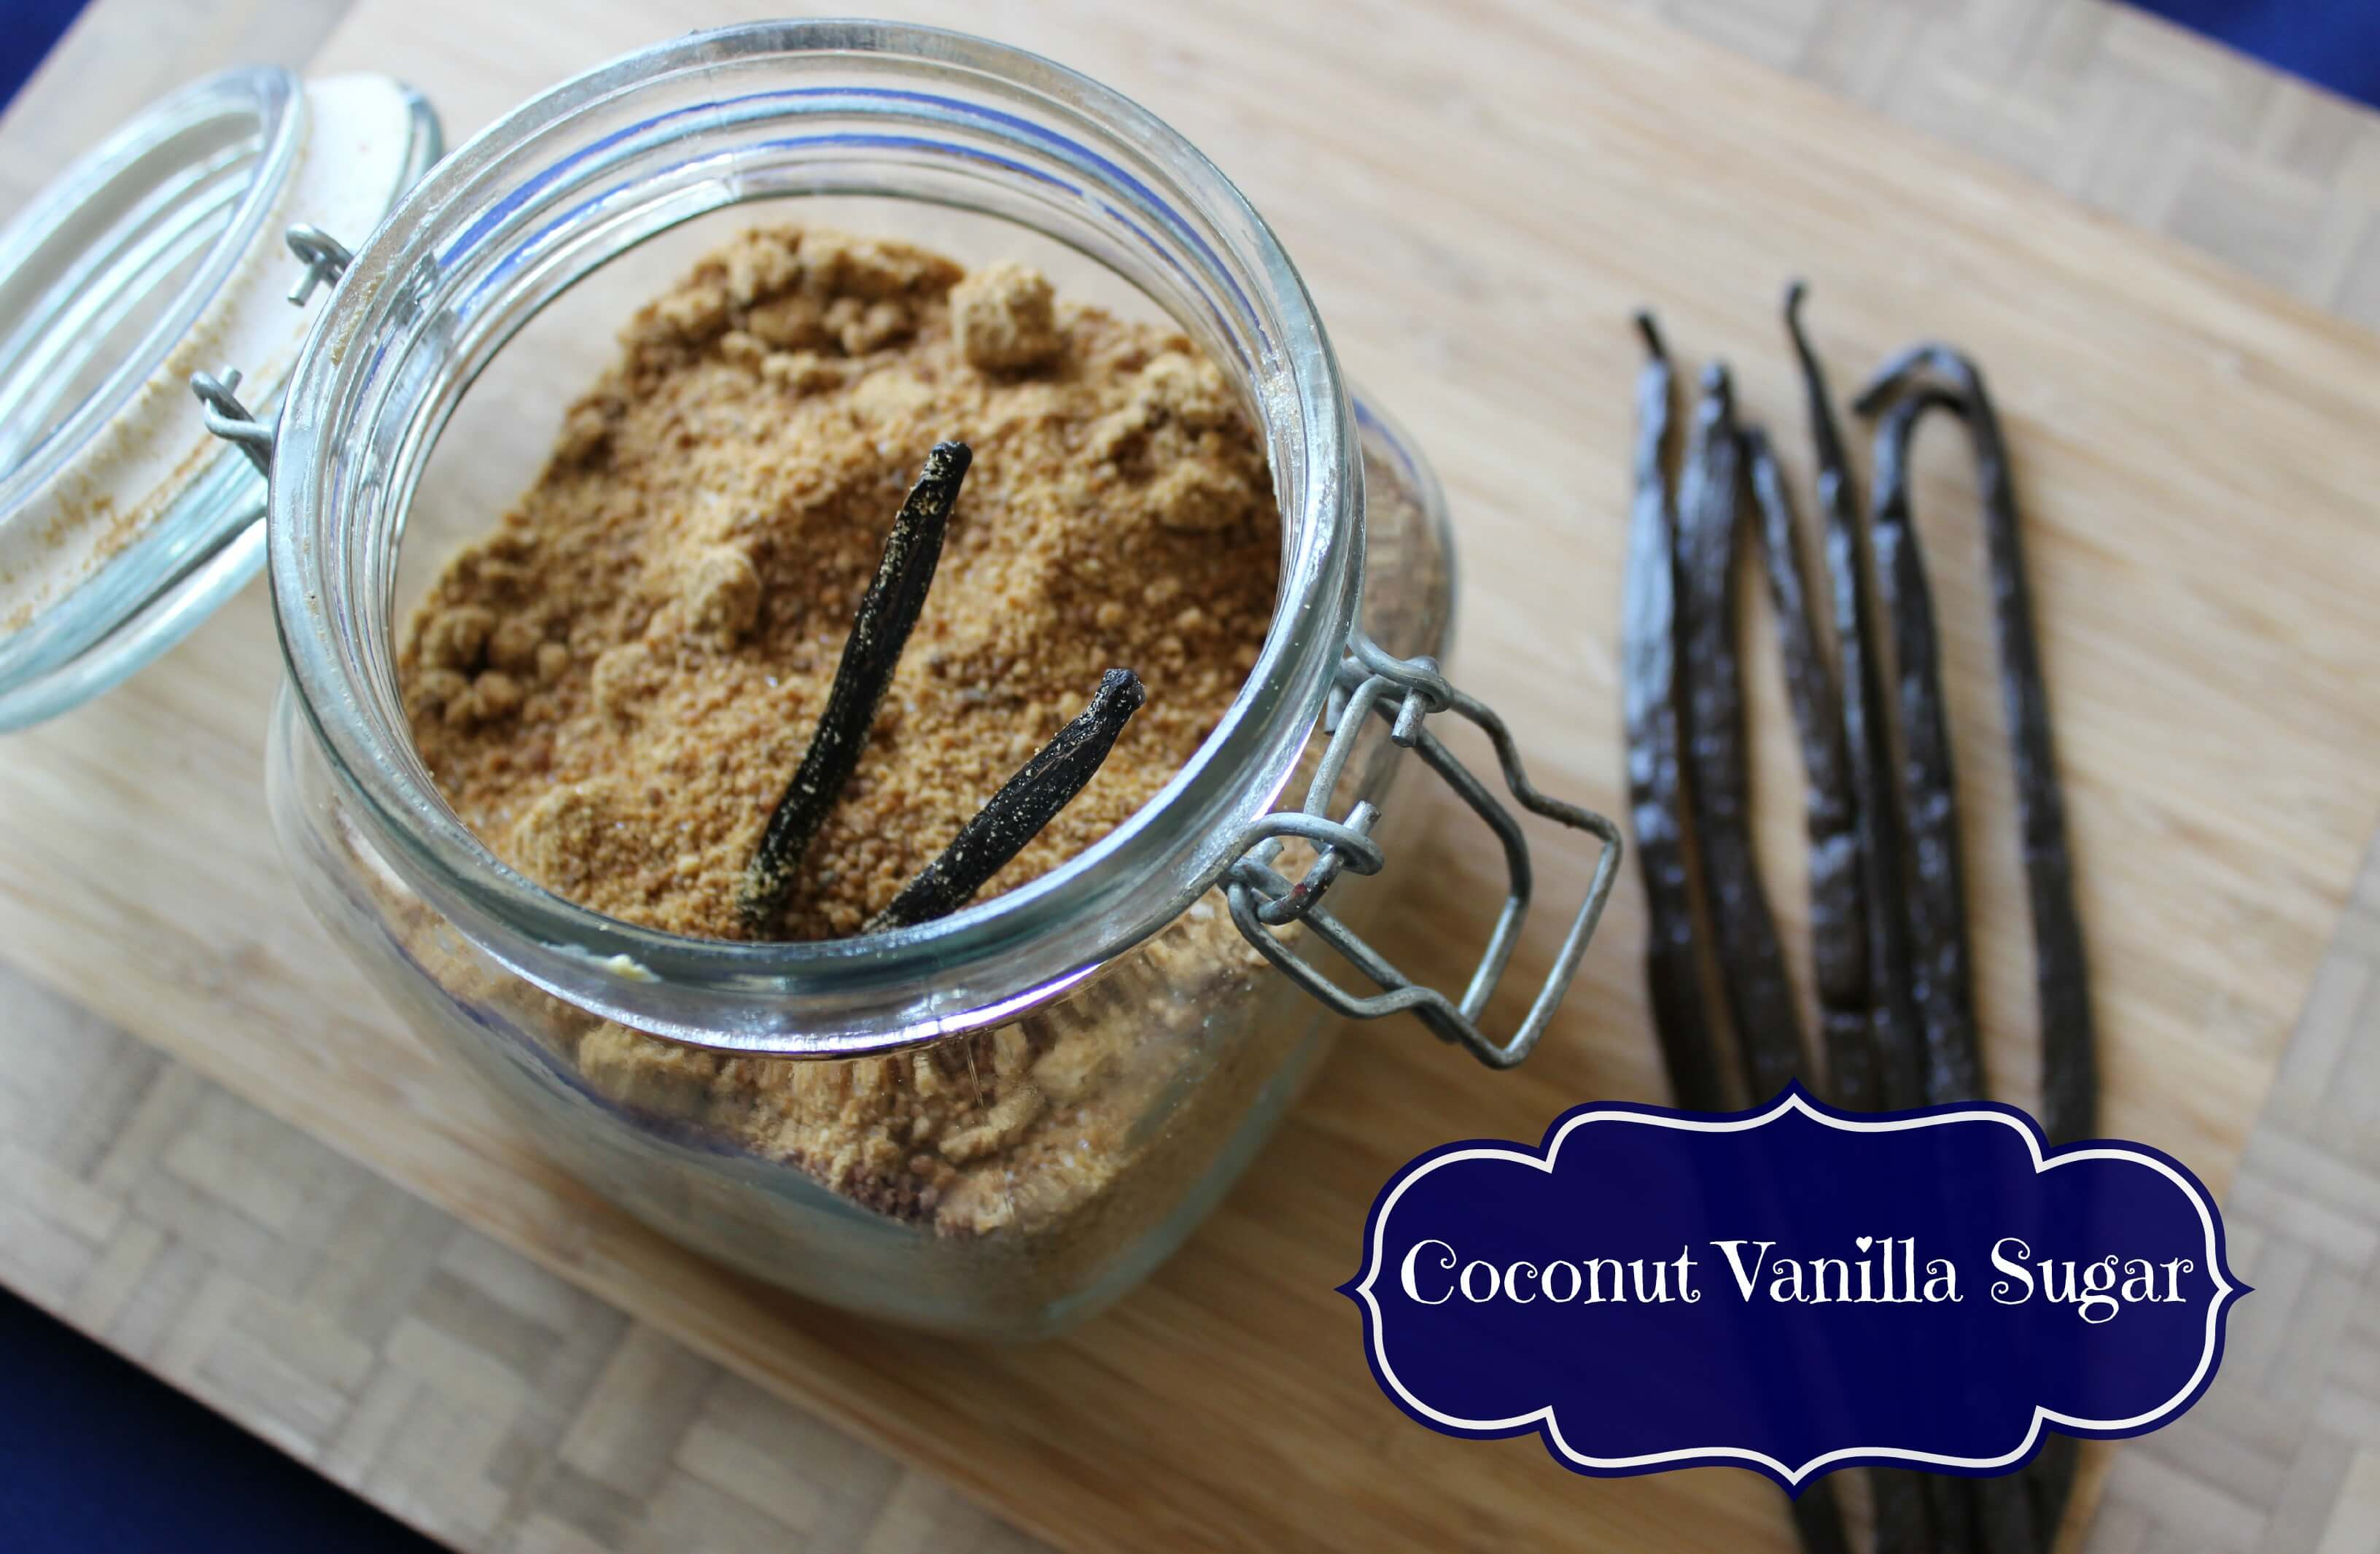 Coconut Vanilla Sugar